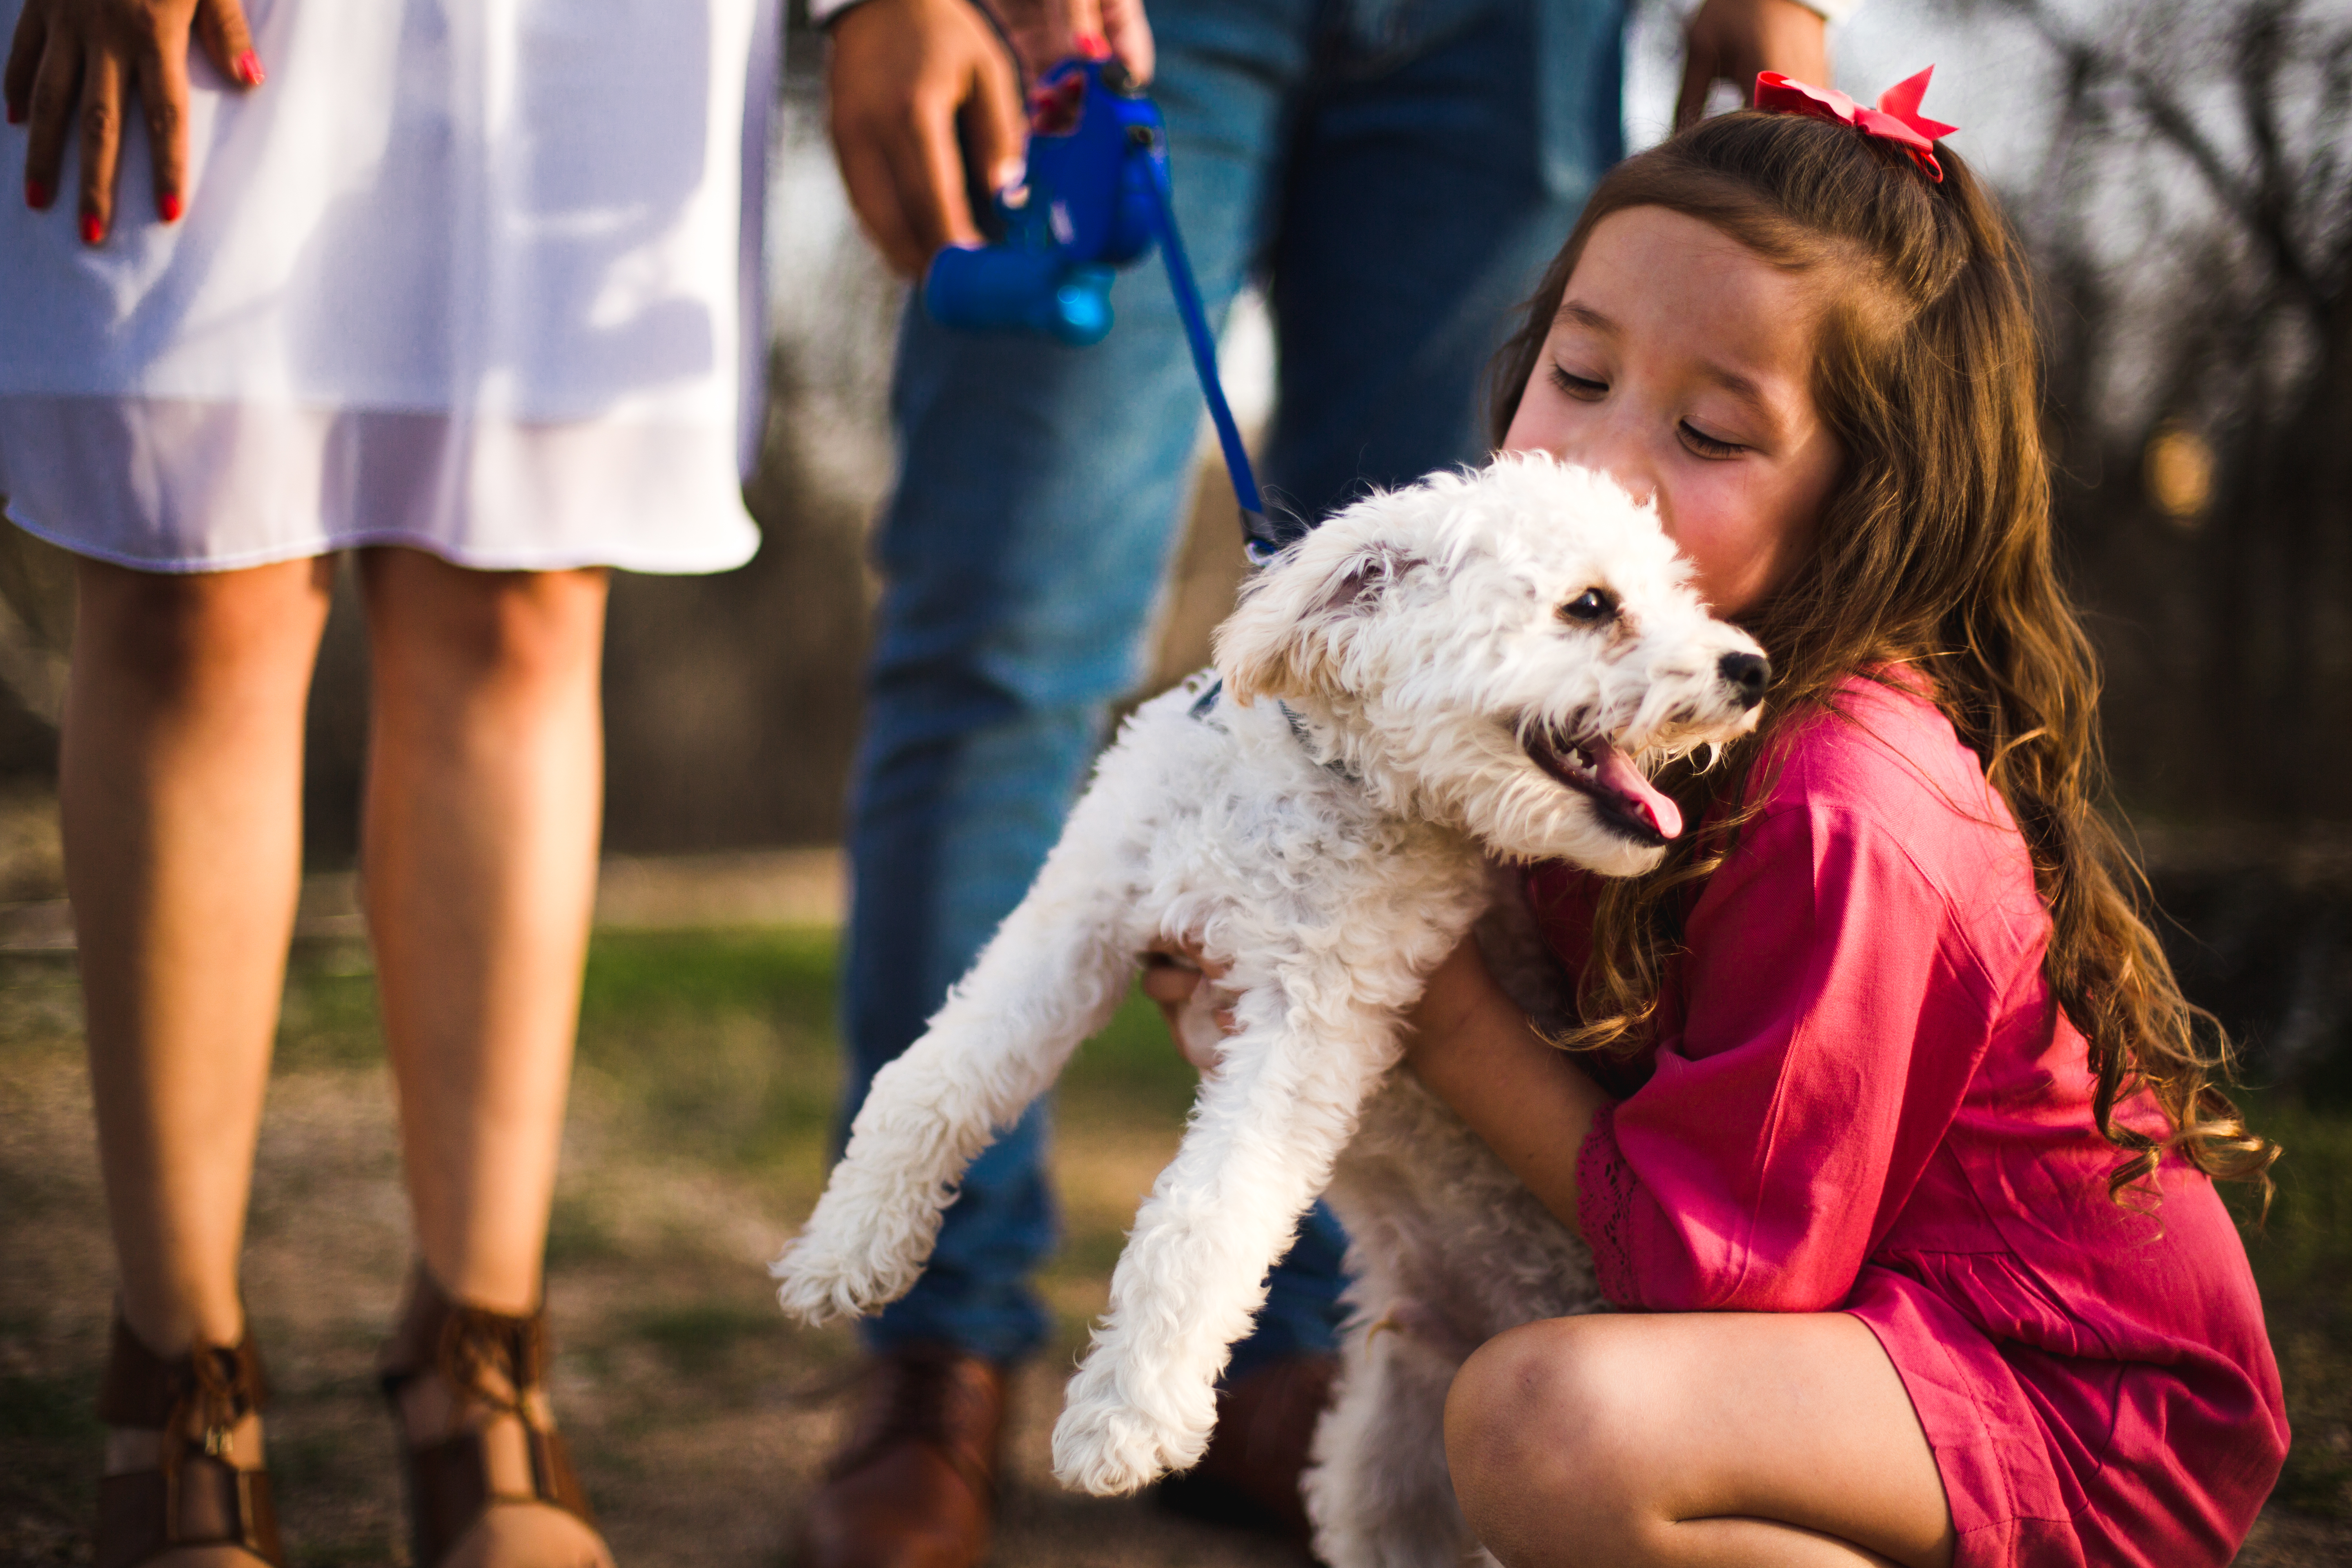 Girl hugging small white dog